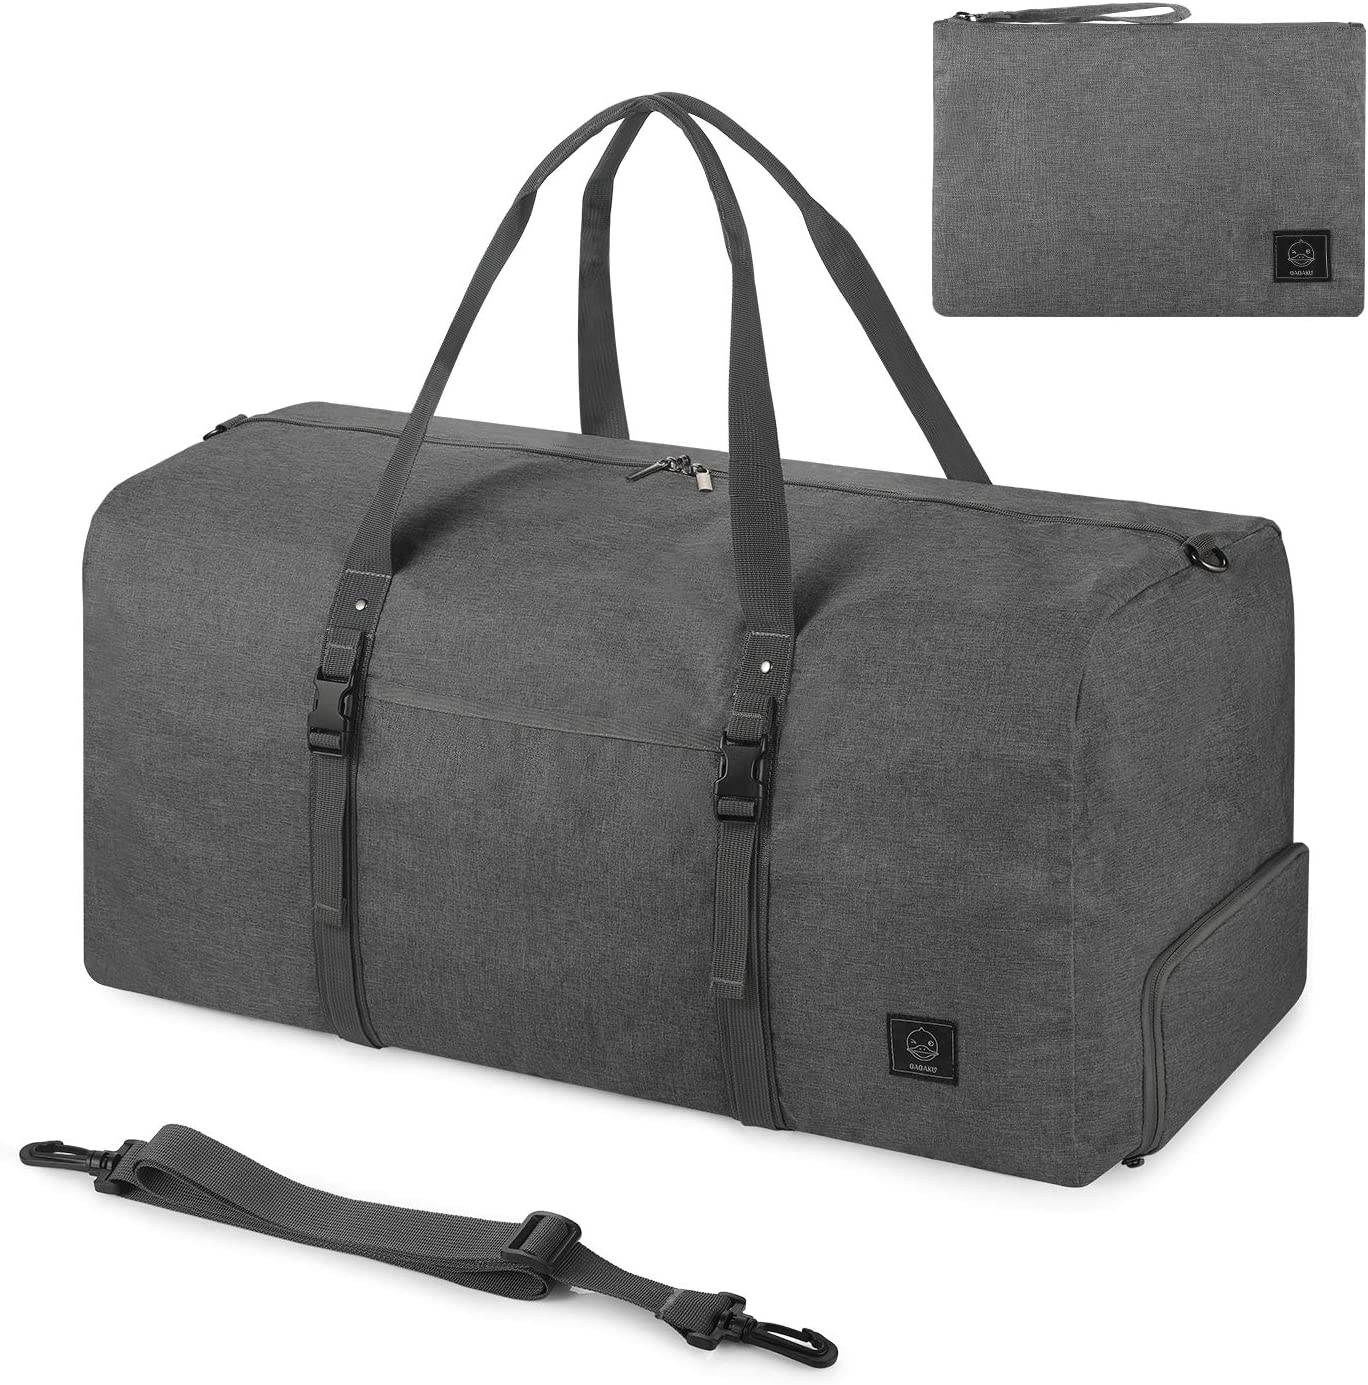 GAGAKU 70L Foldable Duffle Bag Packable Travel Duffel Bag with Shoes Compartment for Travel Large Weekender Bag